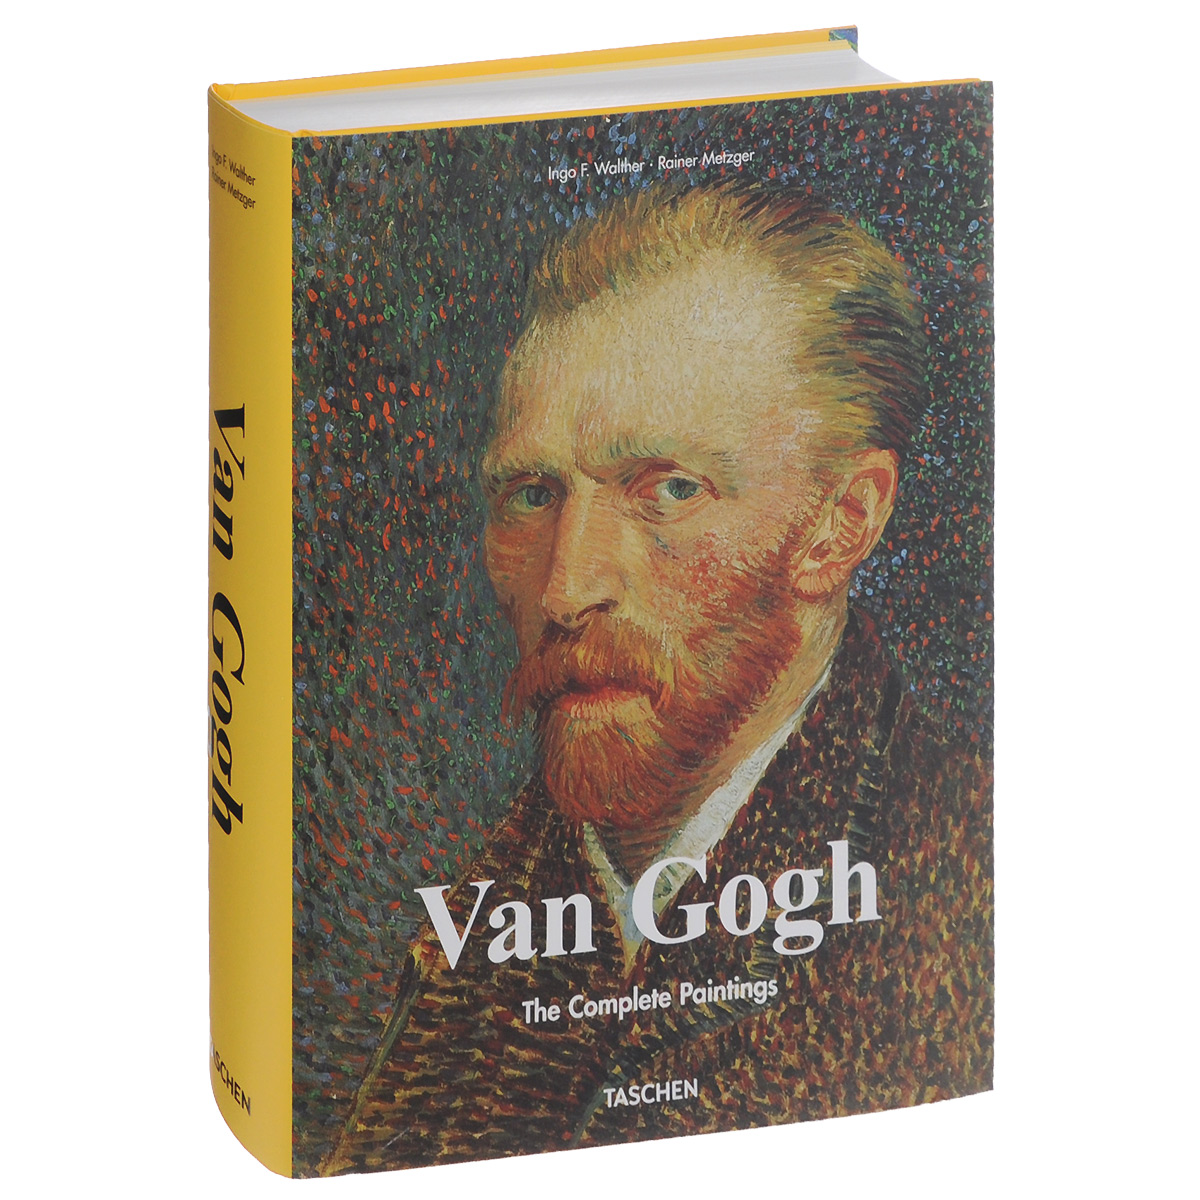 Van Gogh: The Complete Paintings van gogh the man and the earth